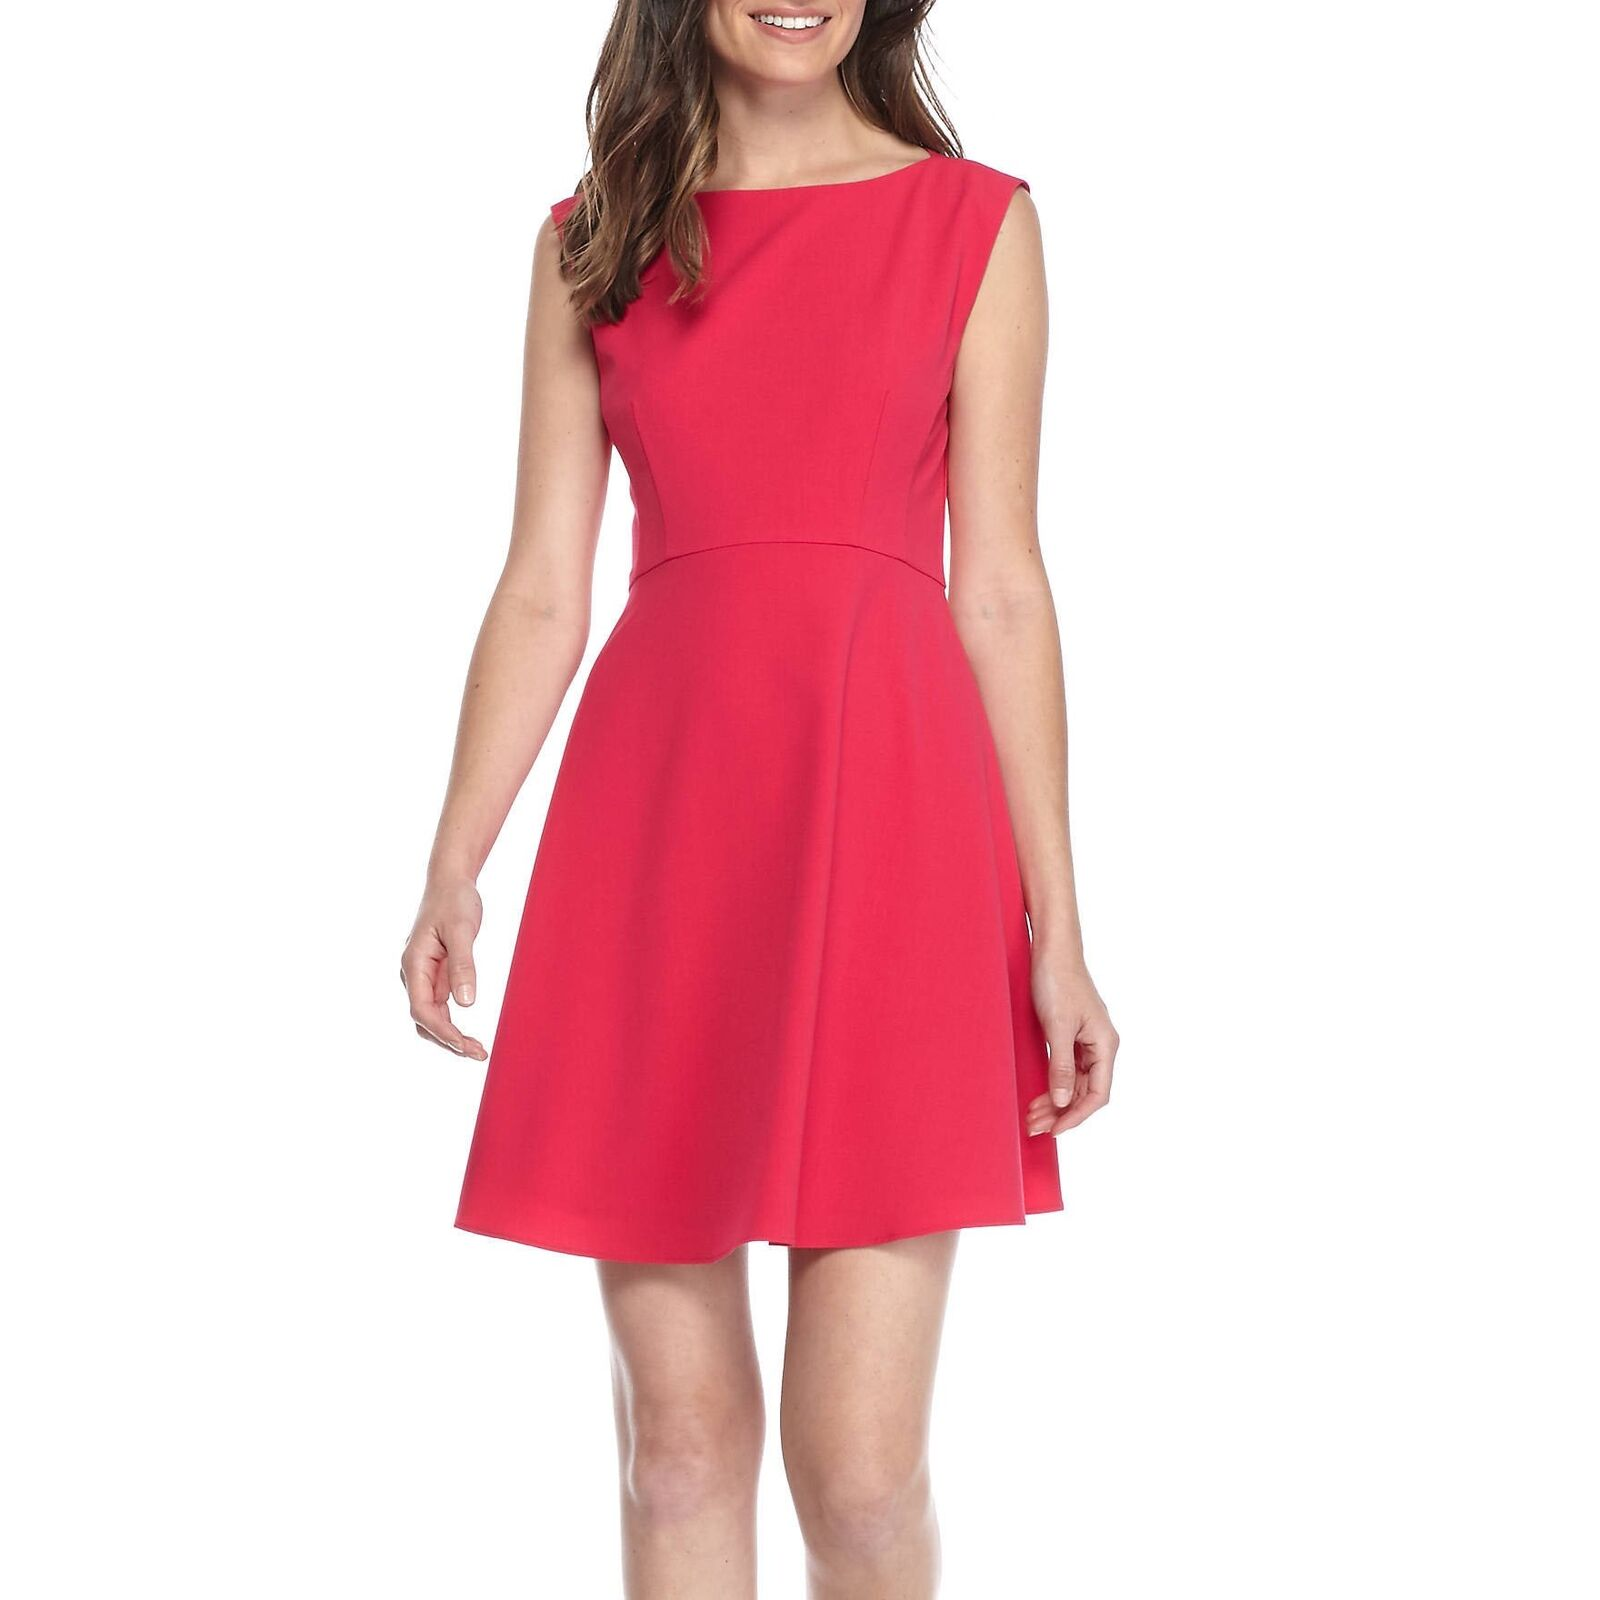 NEW French Connection Whisper Ruth Dress color- Pink Size 6